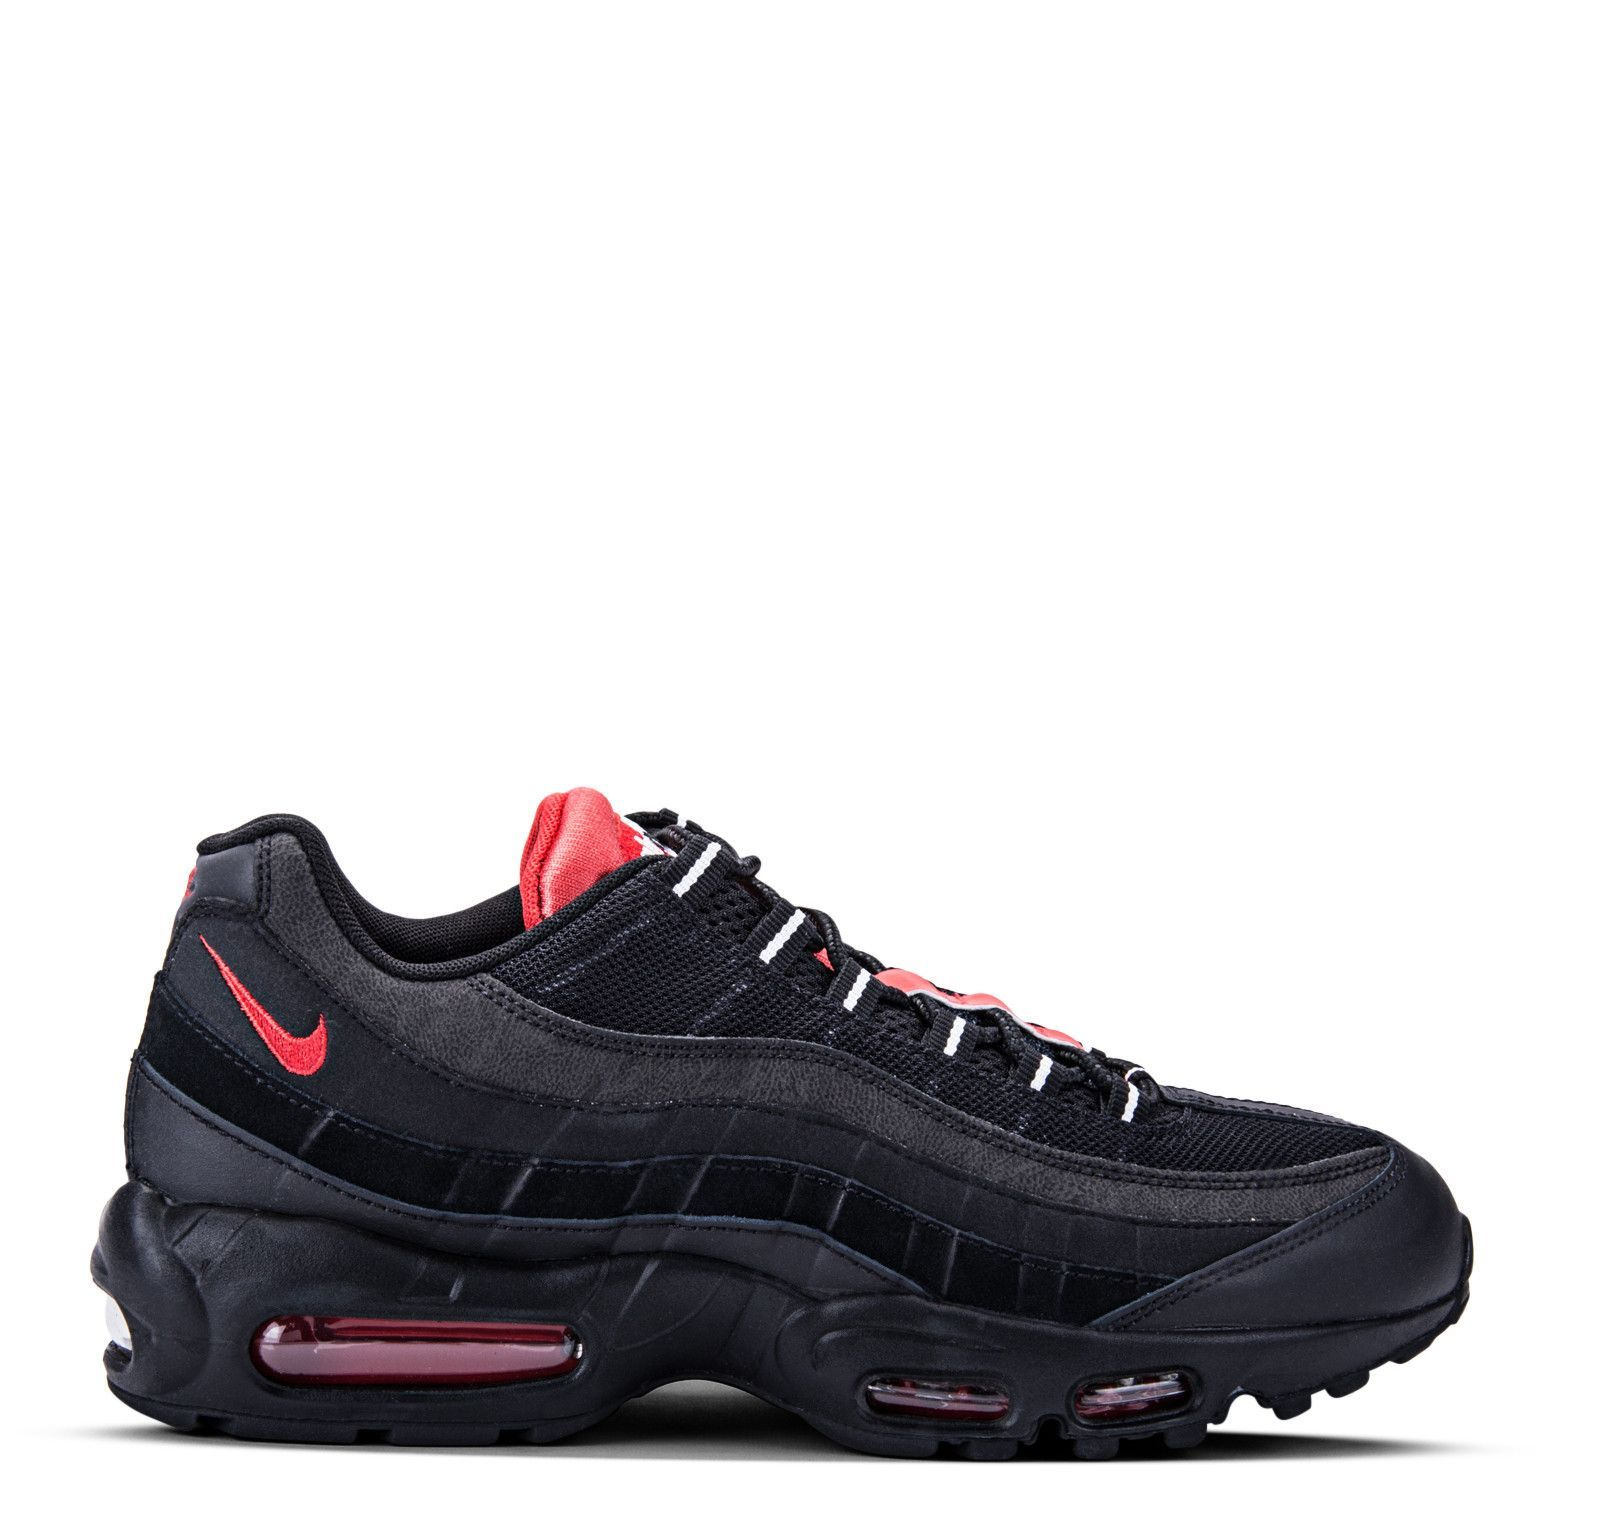 nike air max 95 black challenge red